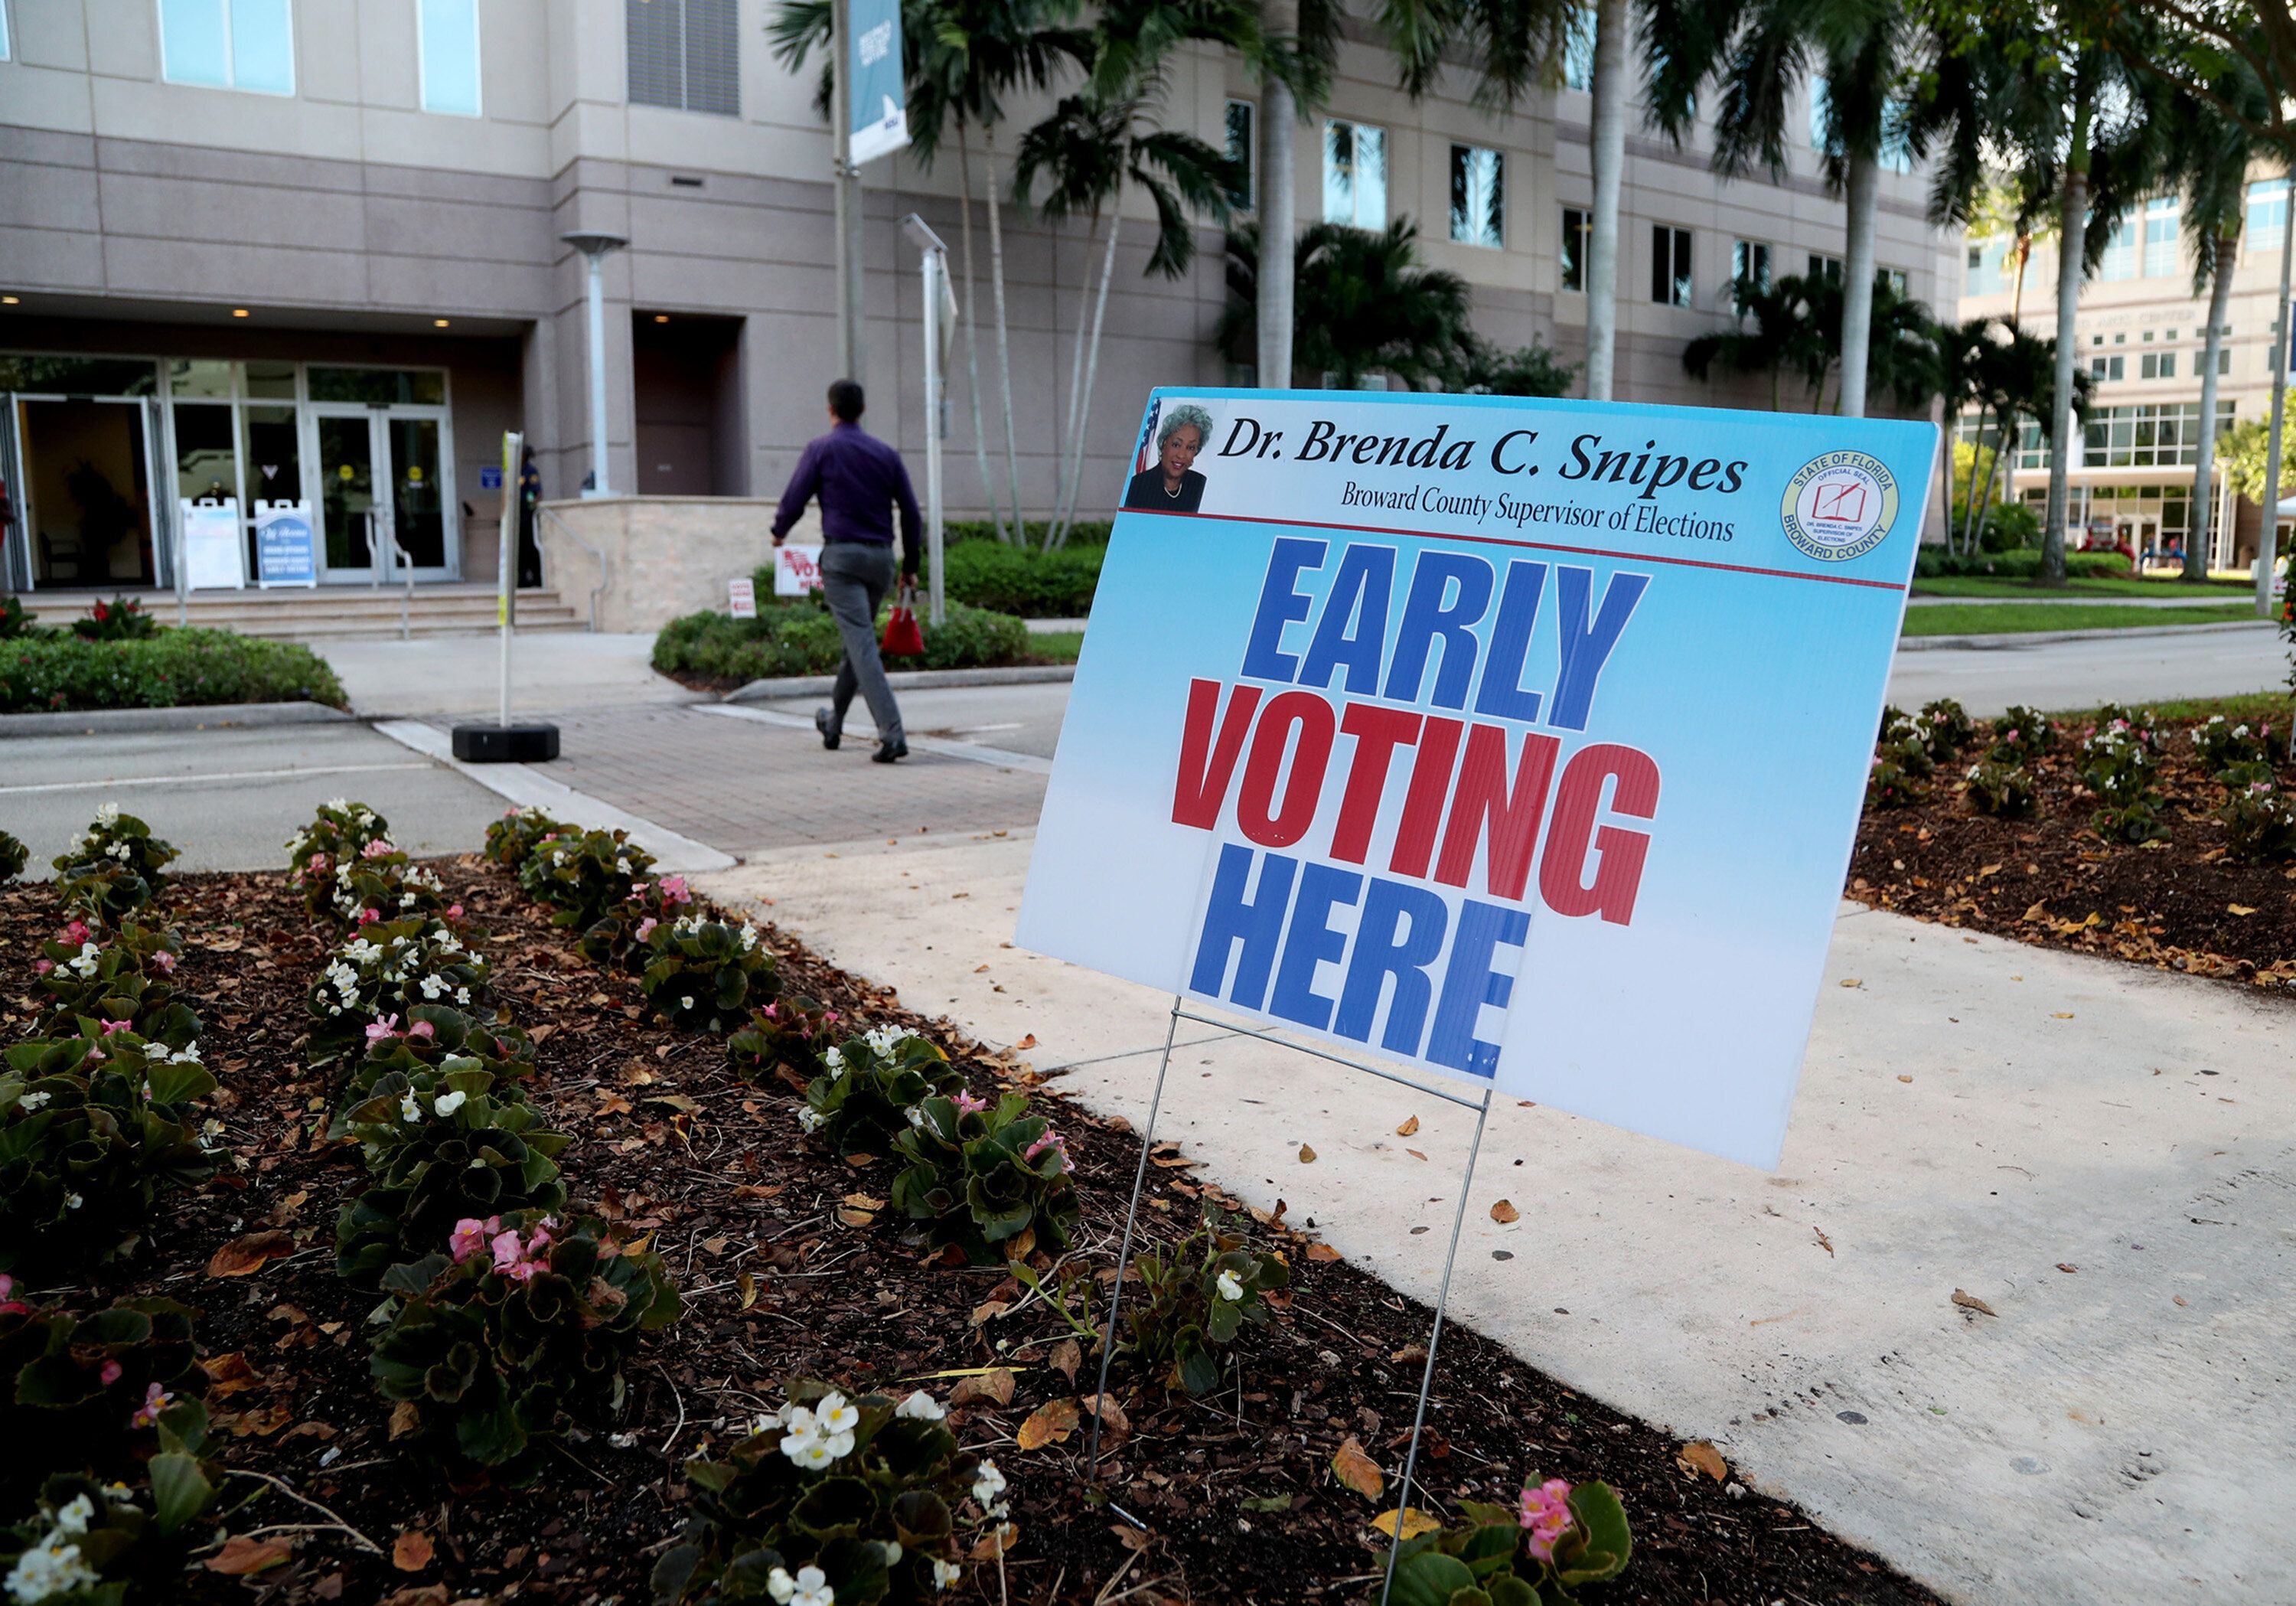 A federal judge ordered Florida to allow early voting at public university facilities last year. Now, the plaintiffs in that